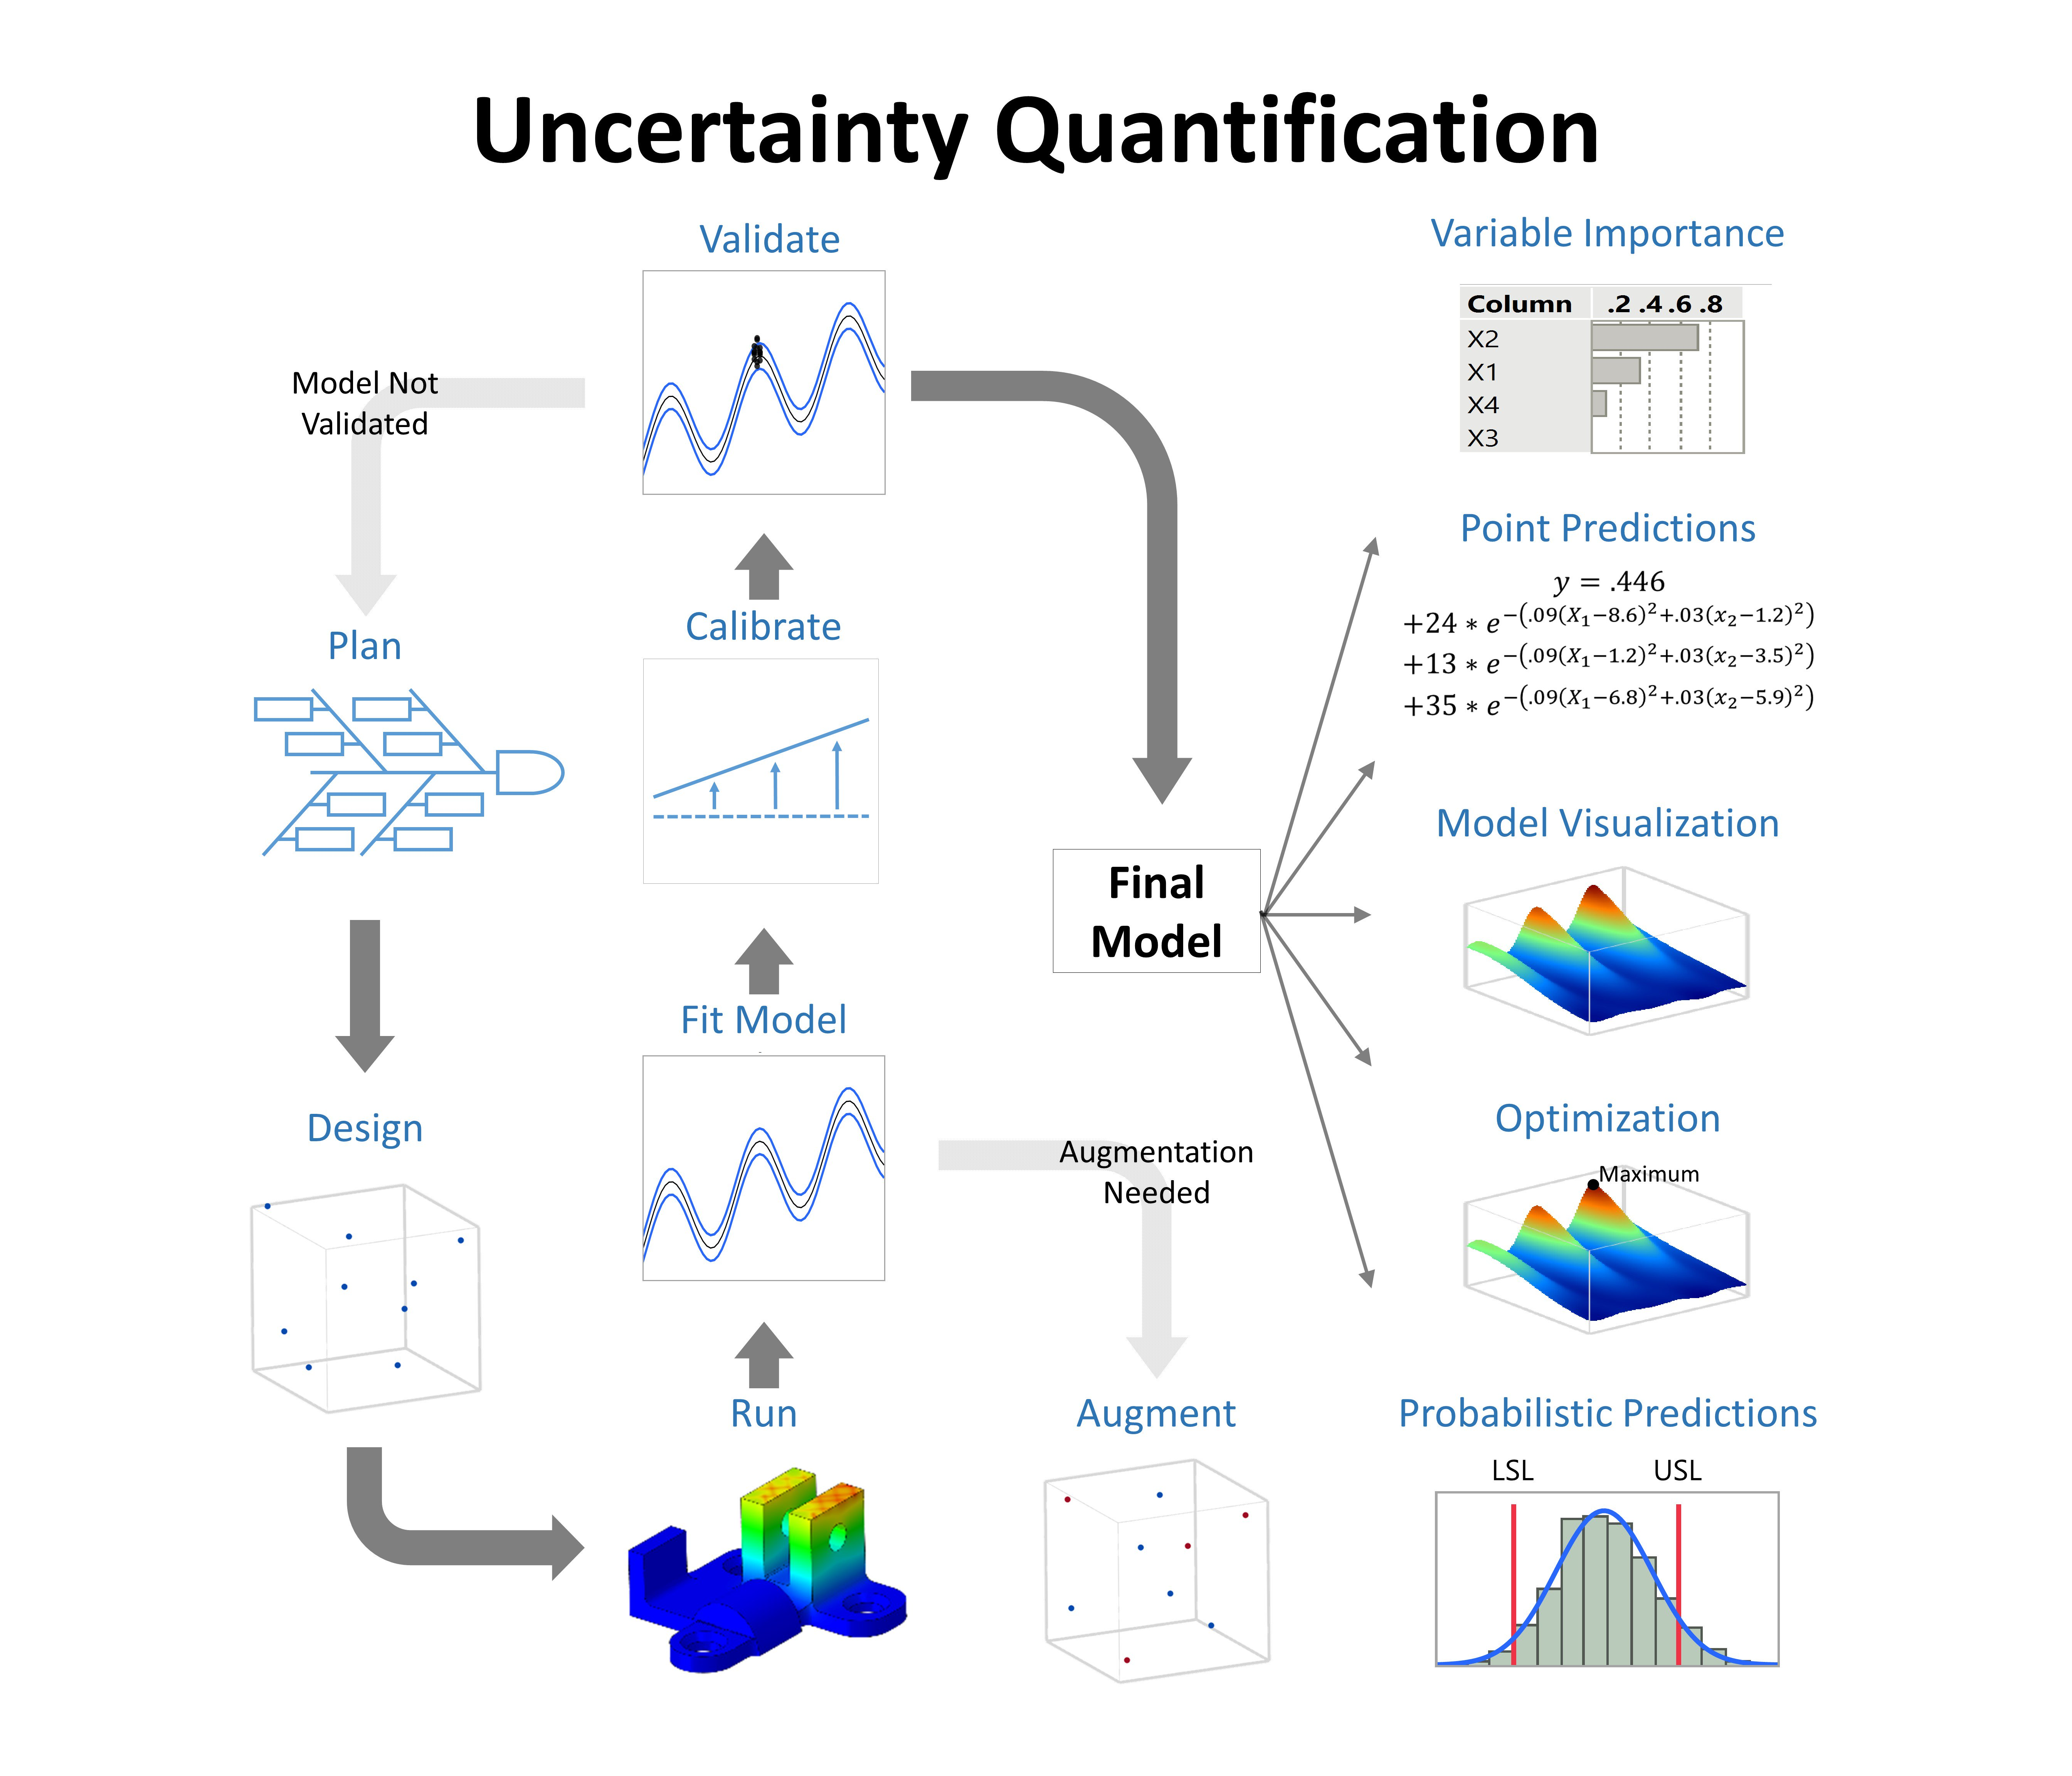 A flowchart-styled images depicting the overall flow of 'Uncertainty Quantification'. Includes images such as graphs, boxes, and x/y axis, and contains arrows moving from one area to another.